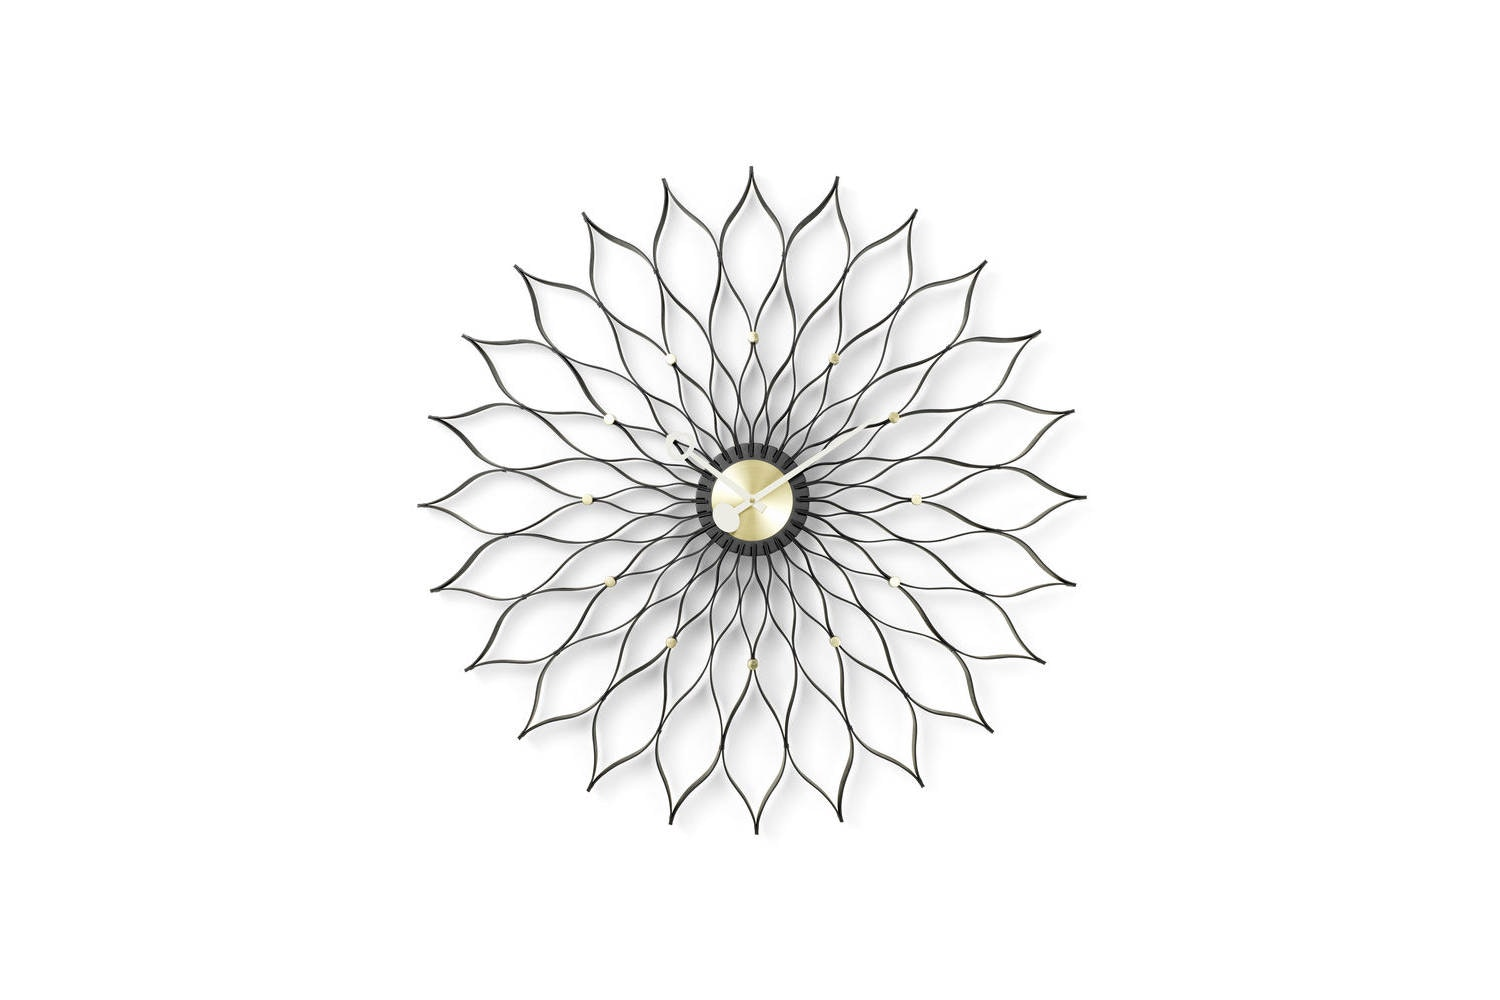 Sunflower Clock - Black Ash/Brass by George Nelson for Vitra